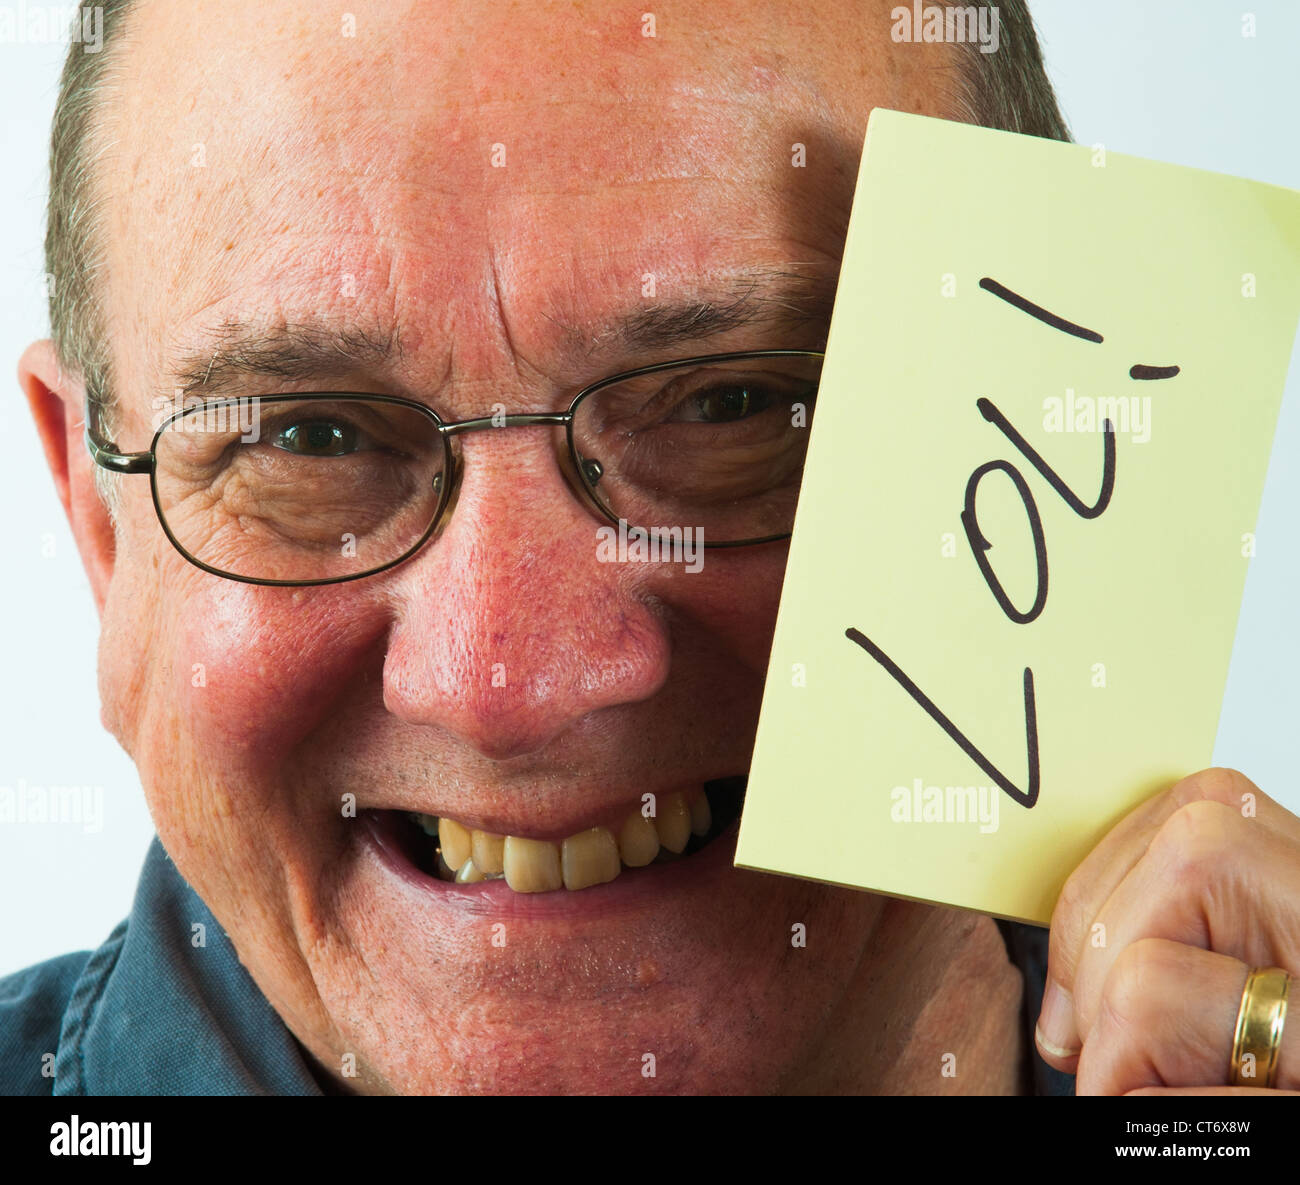 Man holding a LOL! post-it note - Stock Image